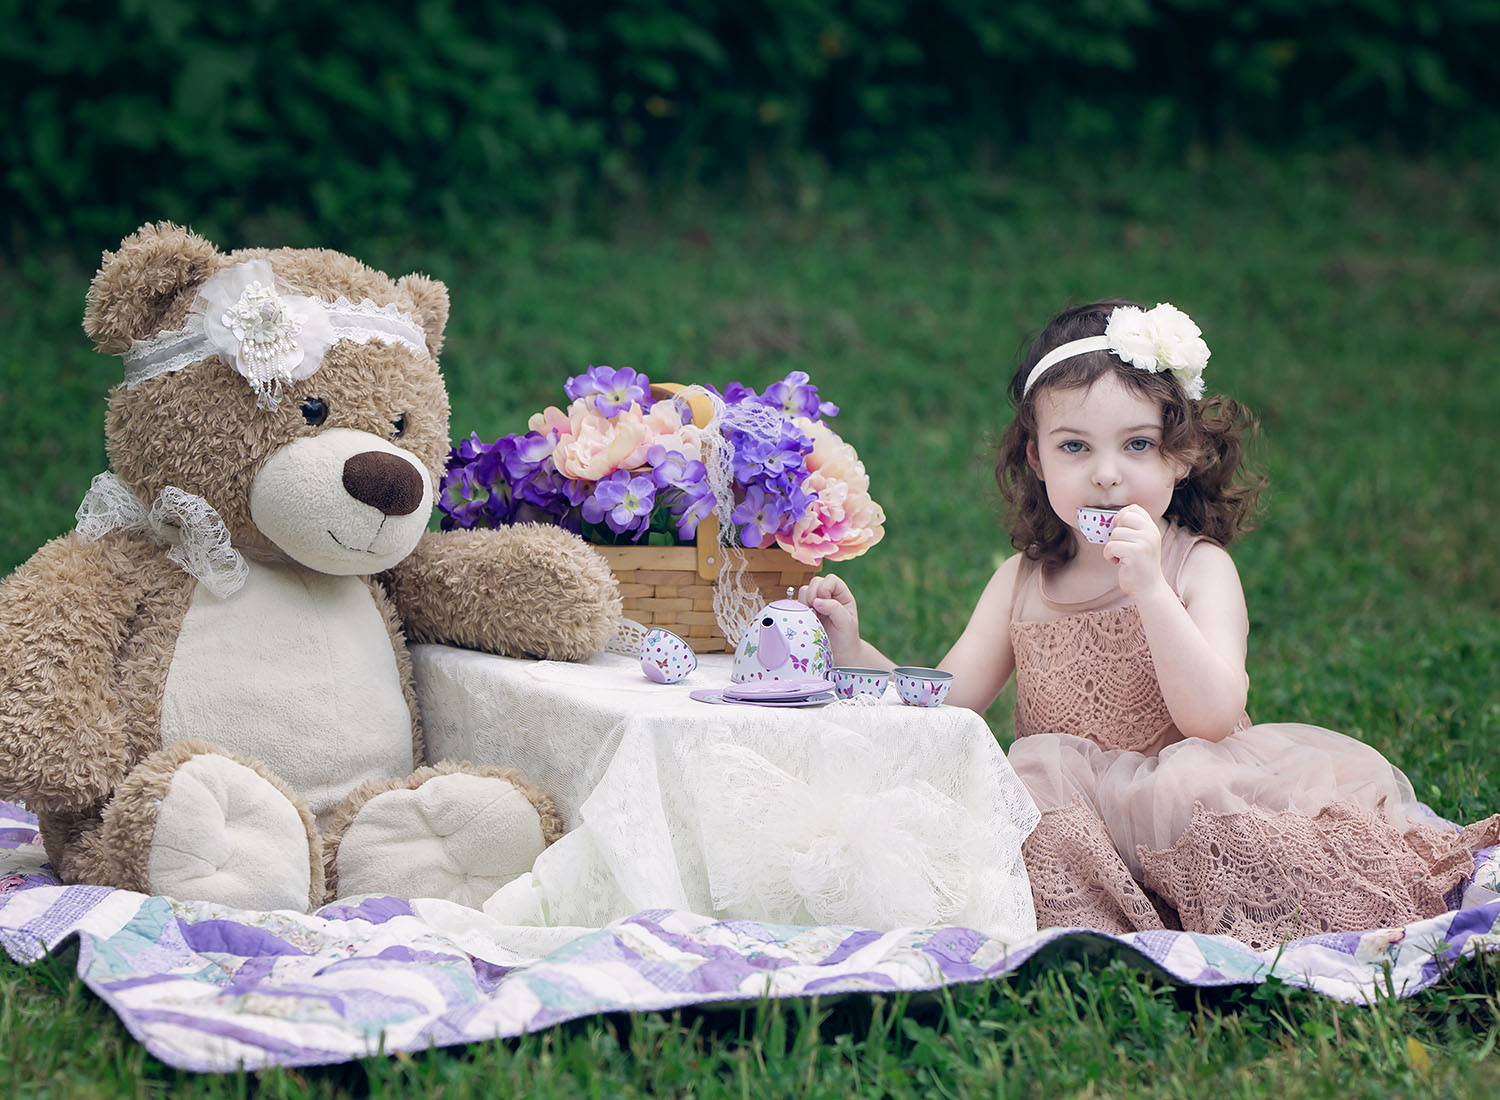 Teddy bear picnic on location with flowers and lace